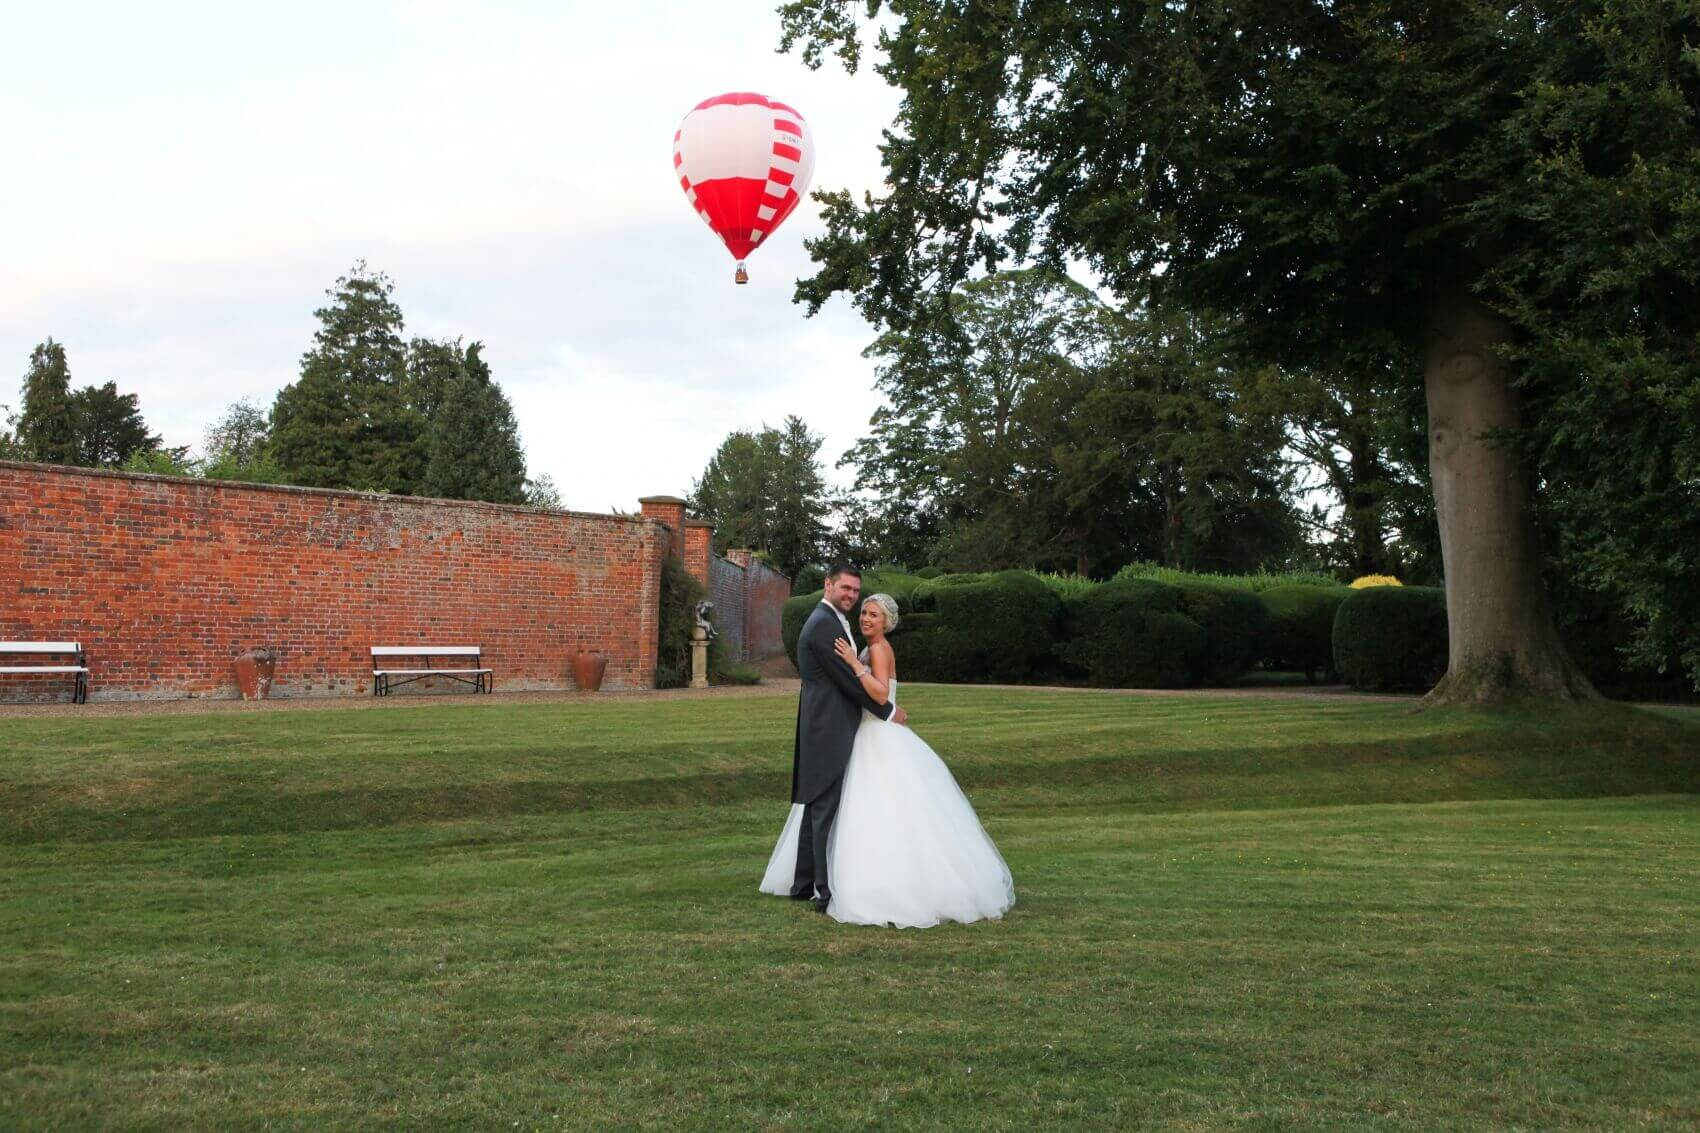 Bride and groom with a hot air ballon at Turvey House Bedfordshire